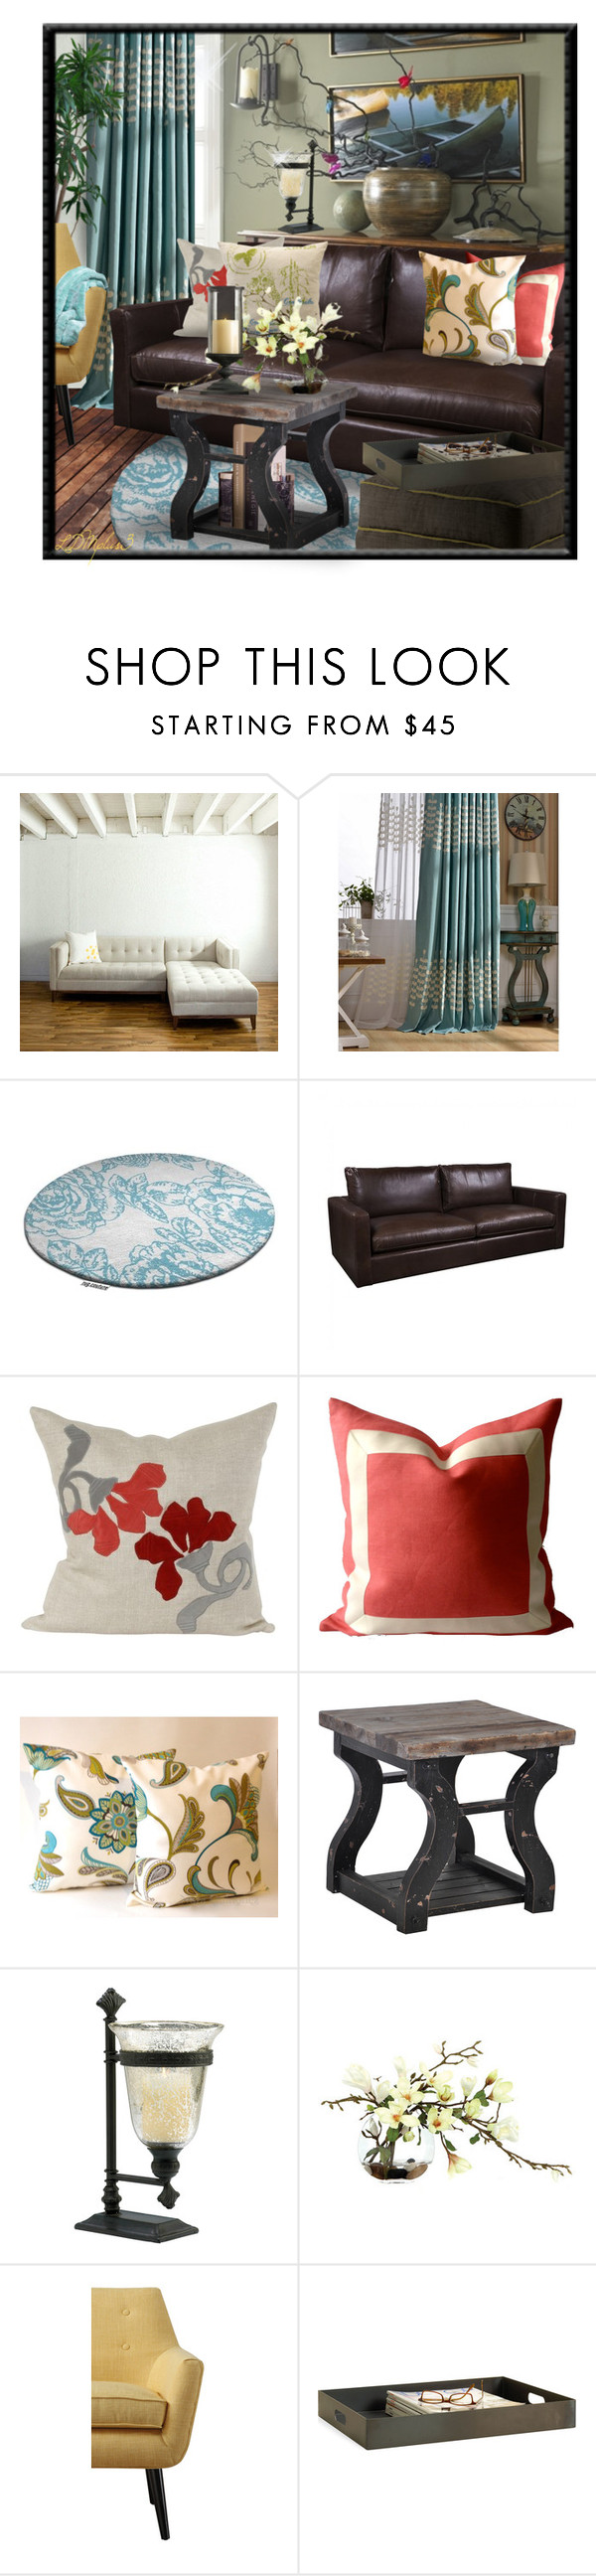 """""""Sitting Pretty"""" by ldmplus3 ❤ liked on Polyvore featuring interior, interiors, interior design, home, home decor, interior decorating, Gus* Modern, Fine Furniture Design, V Rugs & Home and Off-White"""